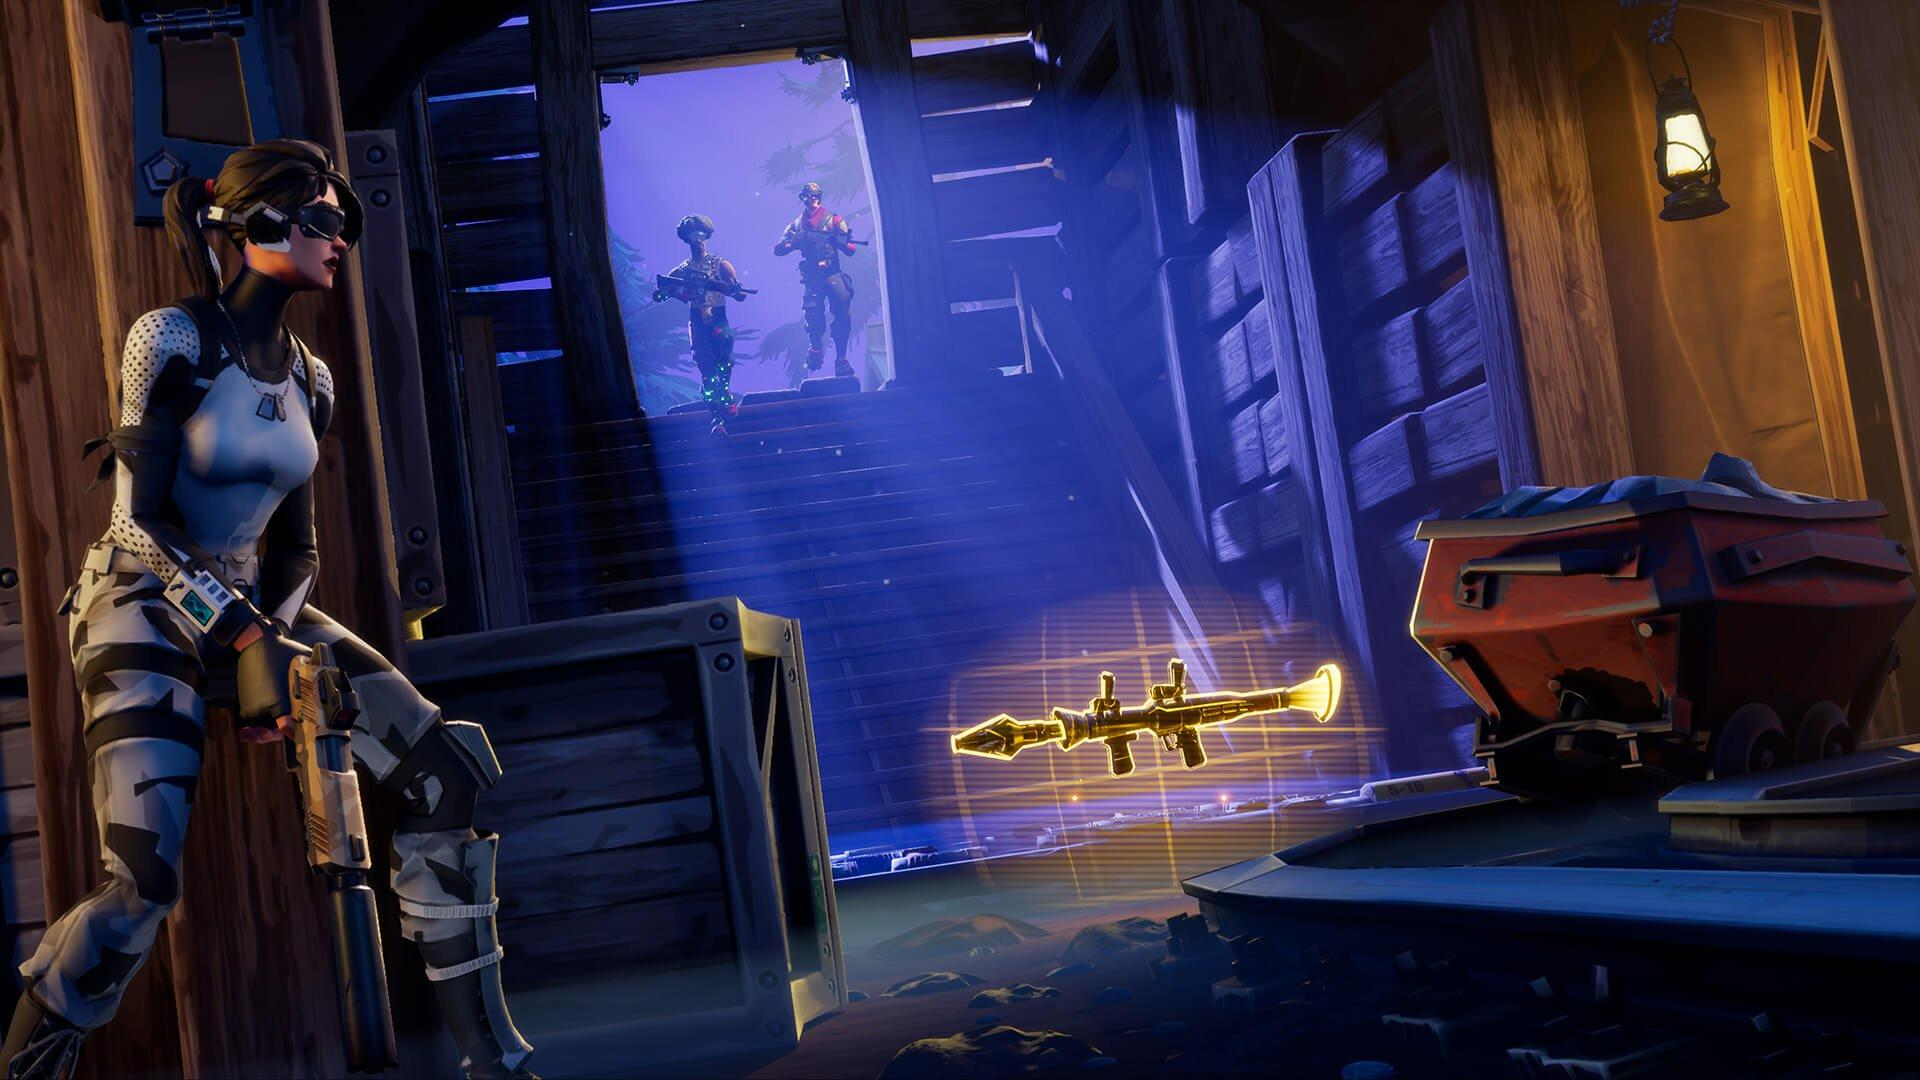 Fortnite V.2.2.0 Patch Brings Changes to Battle Royale and Save The